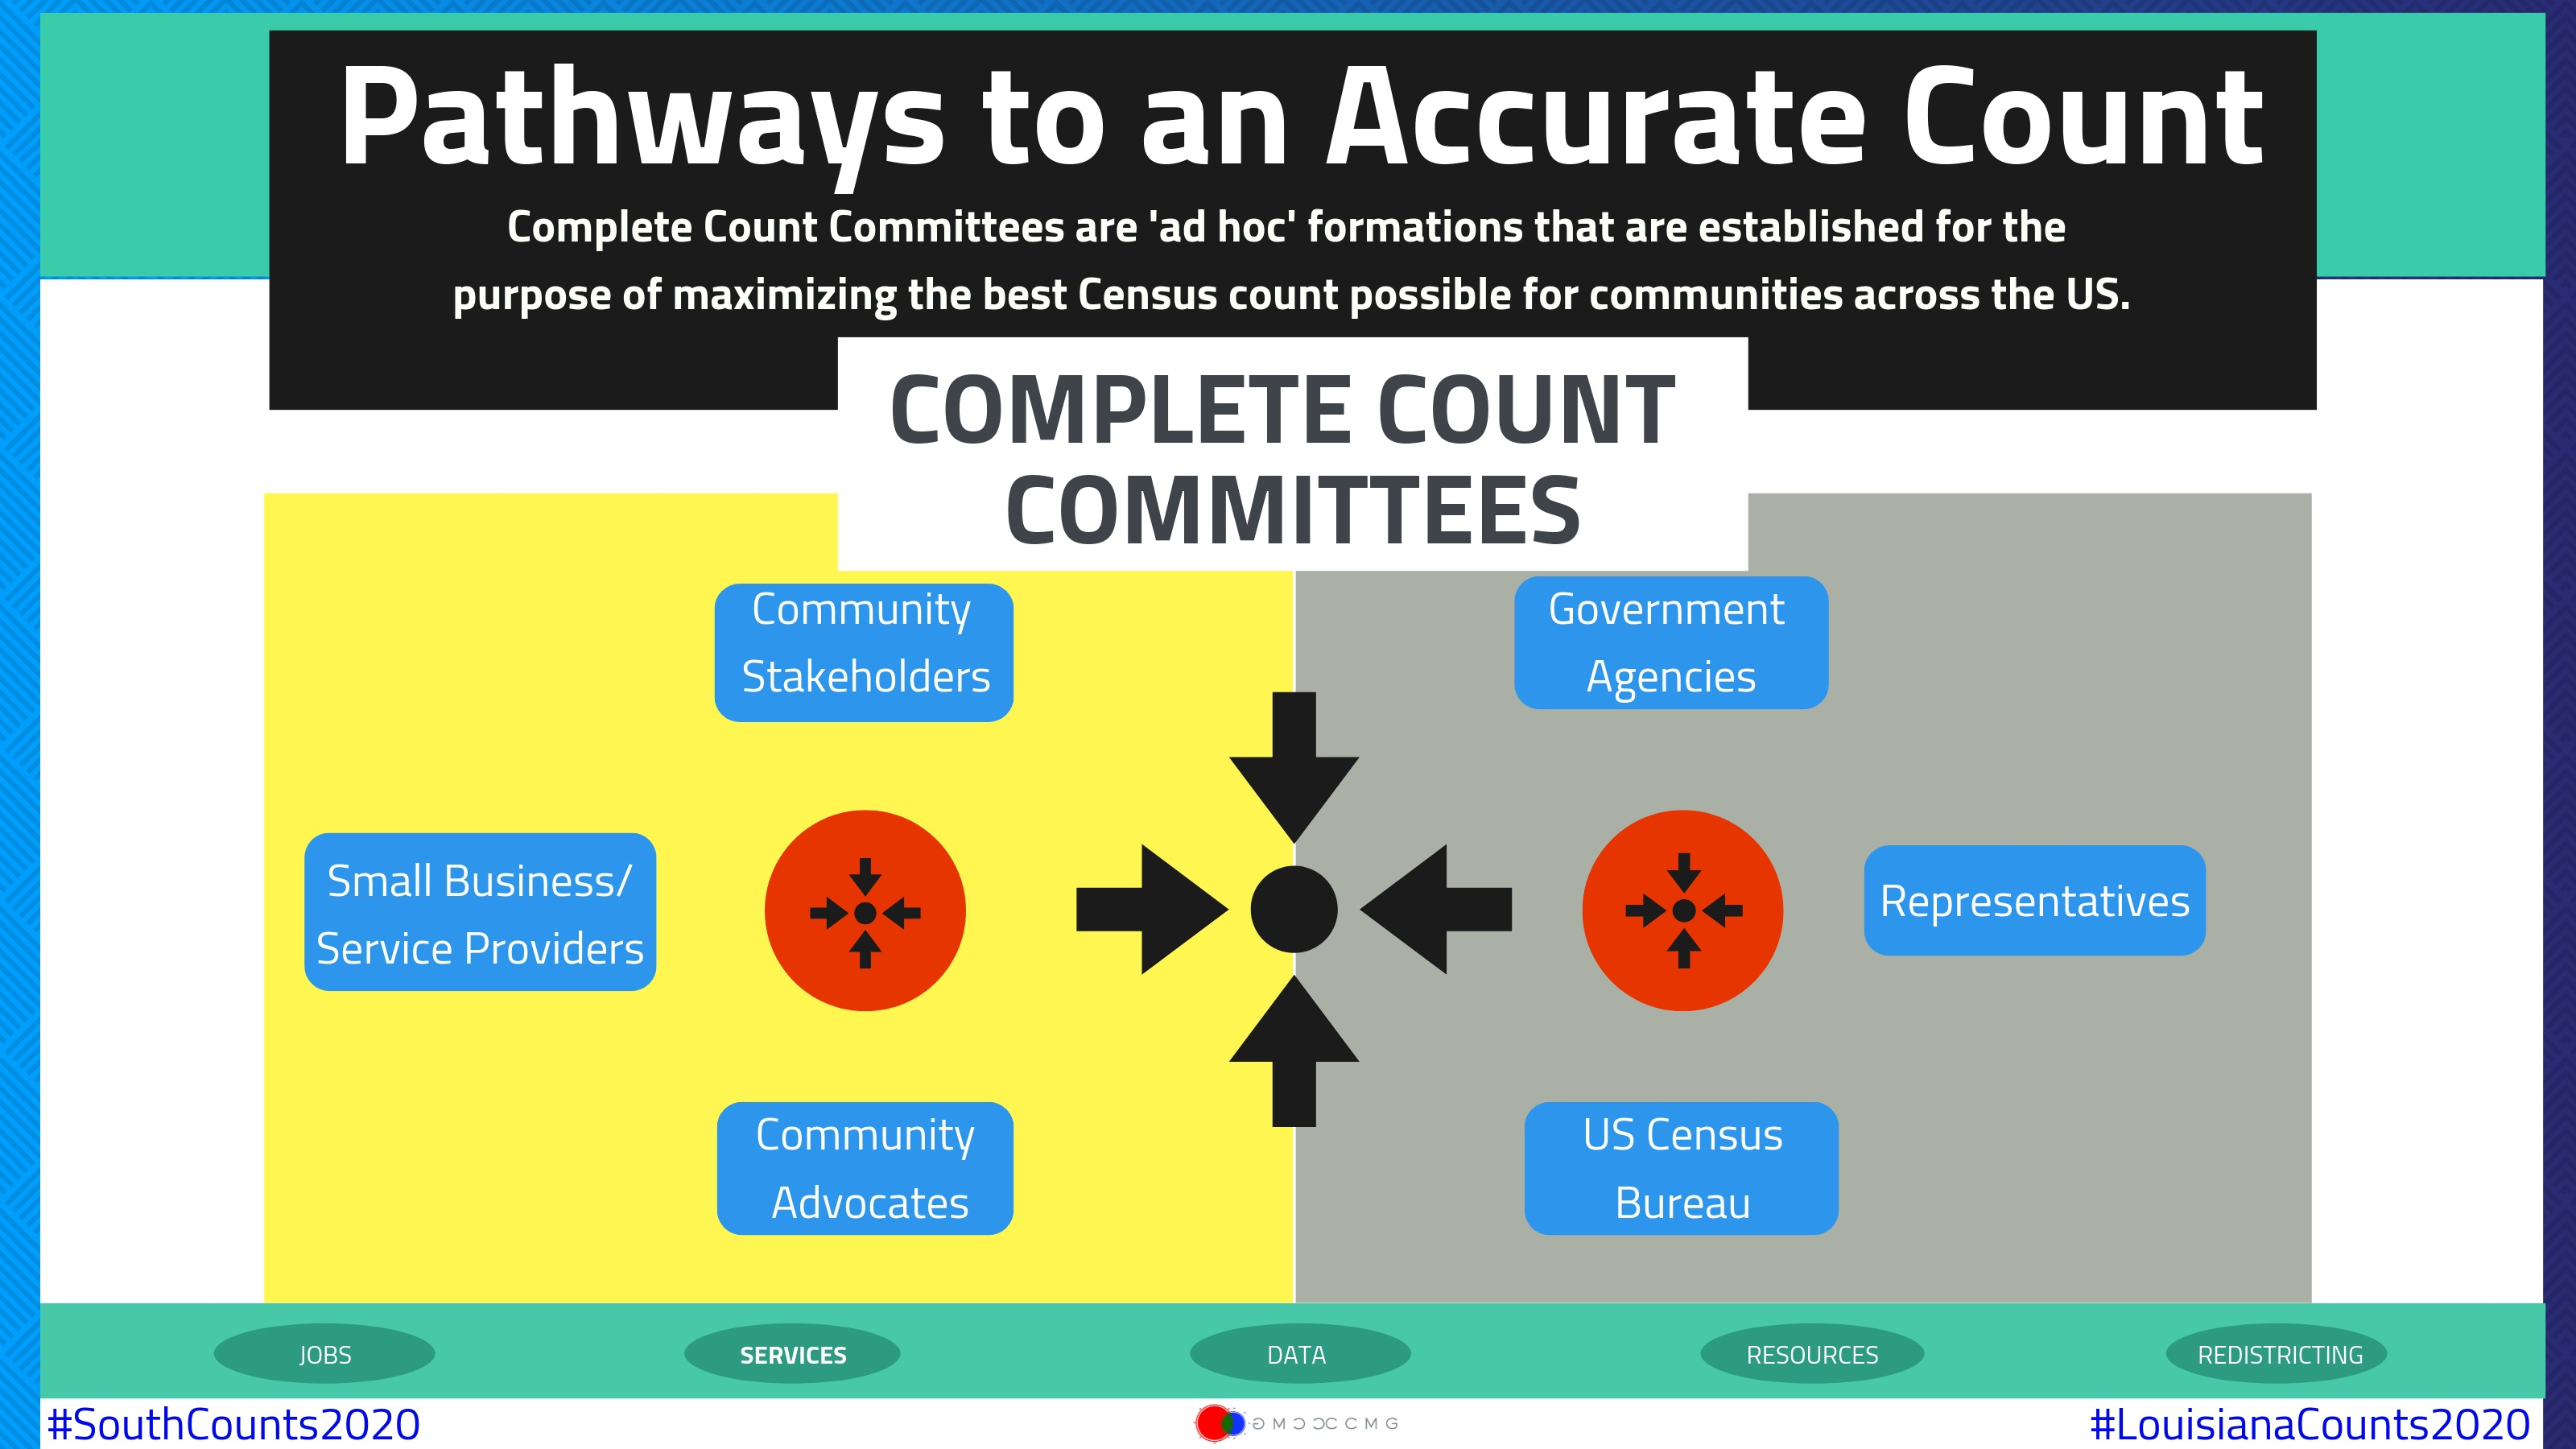 Pathways to an Accurate Count